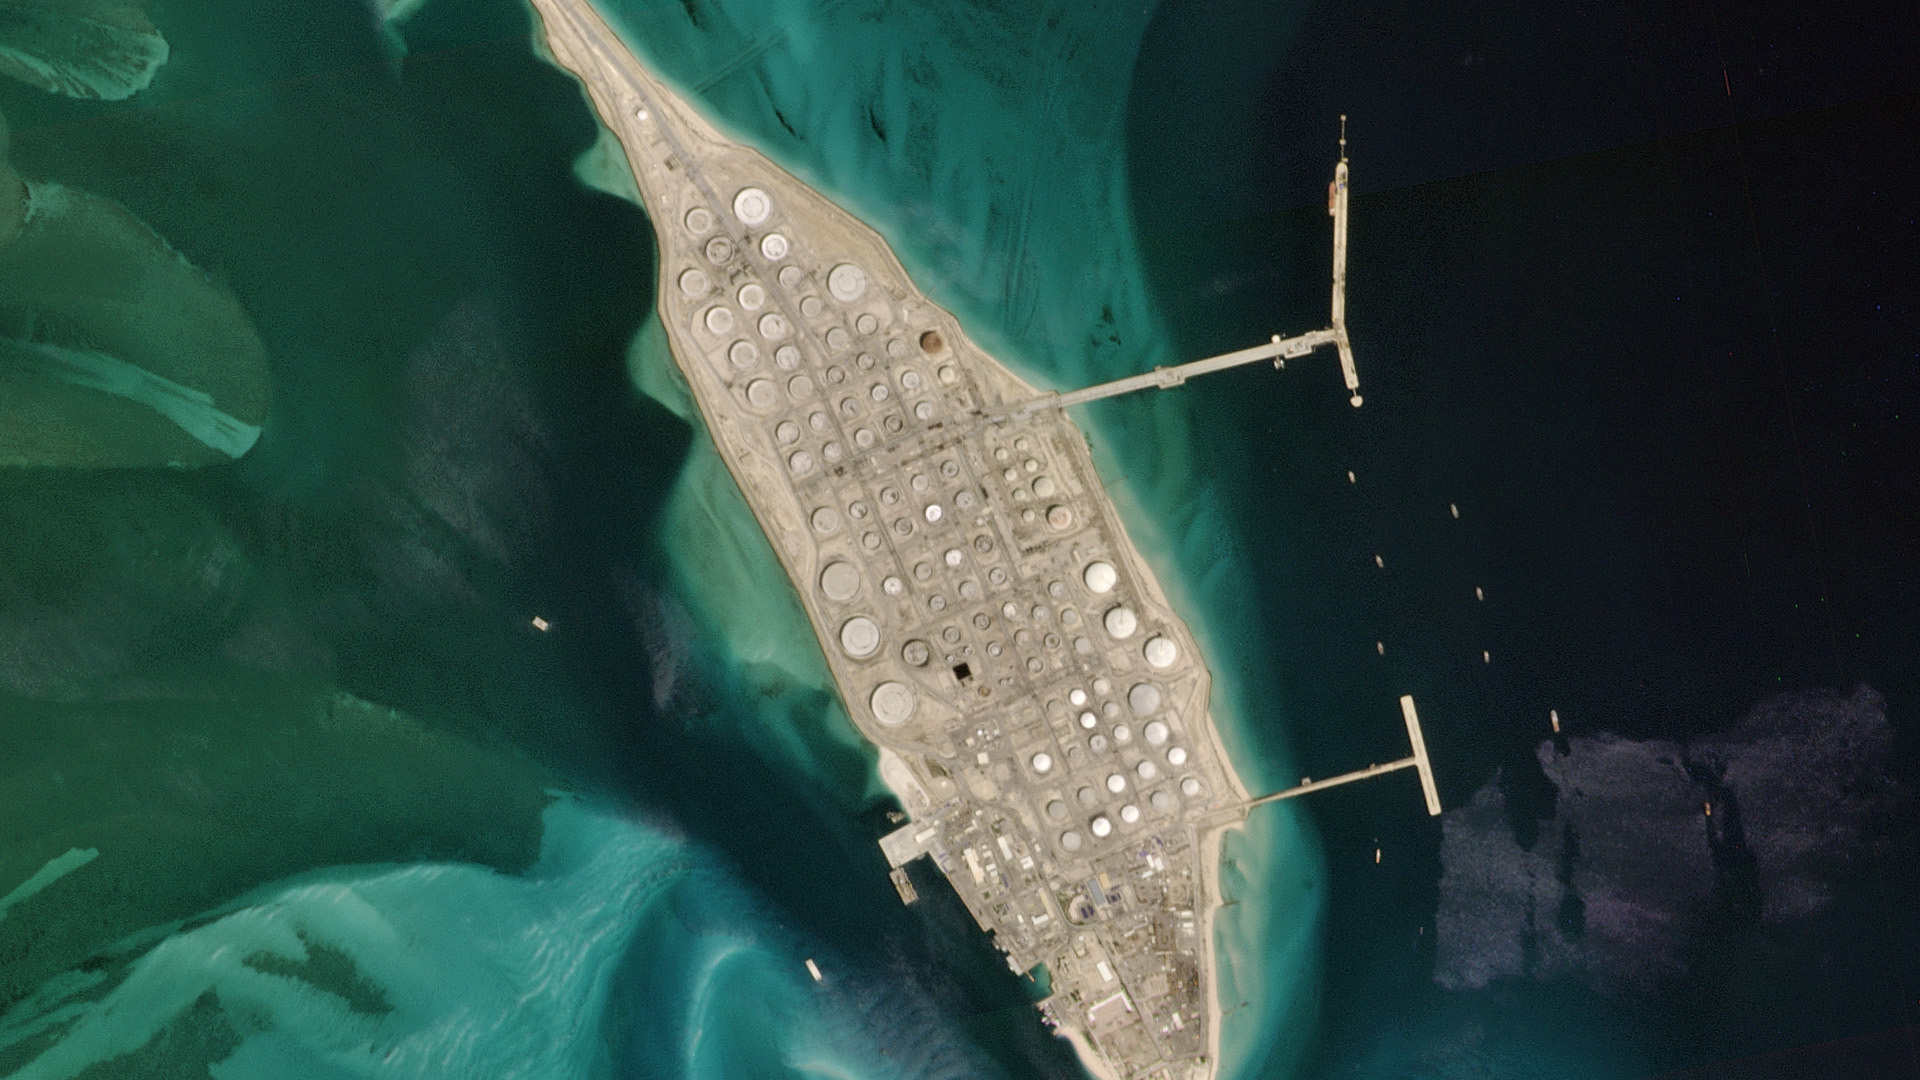 Planet imagery of Saudi Aramco crude oil storage in Ras Tanura, Saudi Arabia. © 2020, Planet Labs Inc. All Rights Reserved.